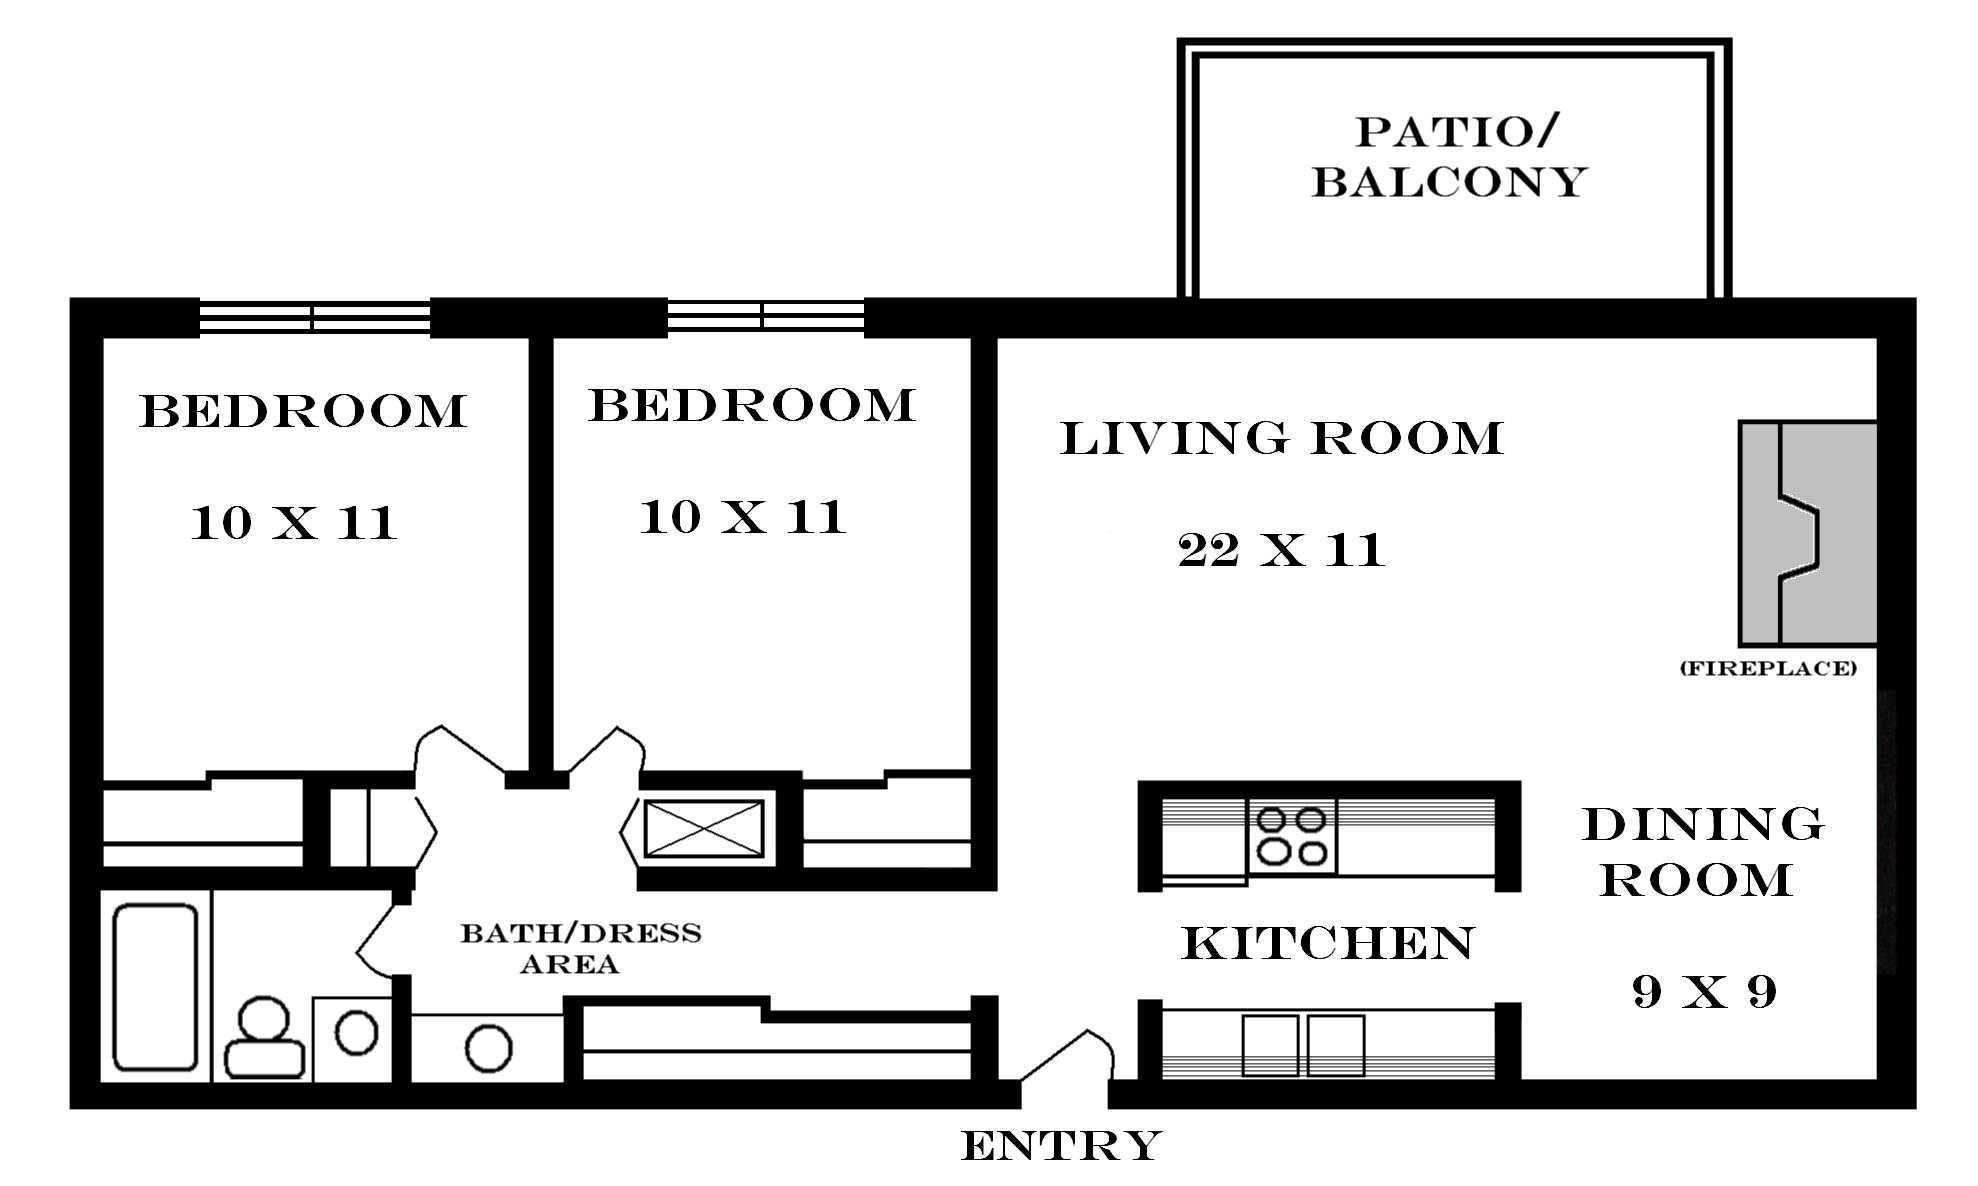 Beautiful Image Of Small Apartment Plans 2 Bedroom Small Apartment Plans 2 Bedroom Floor Plans Studio Apartment Floor Plans